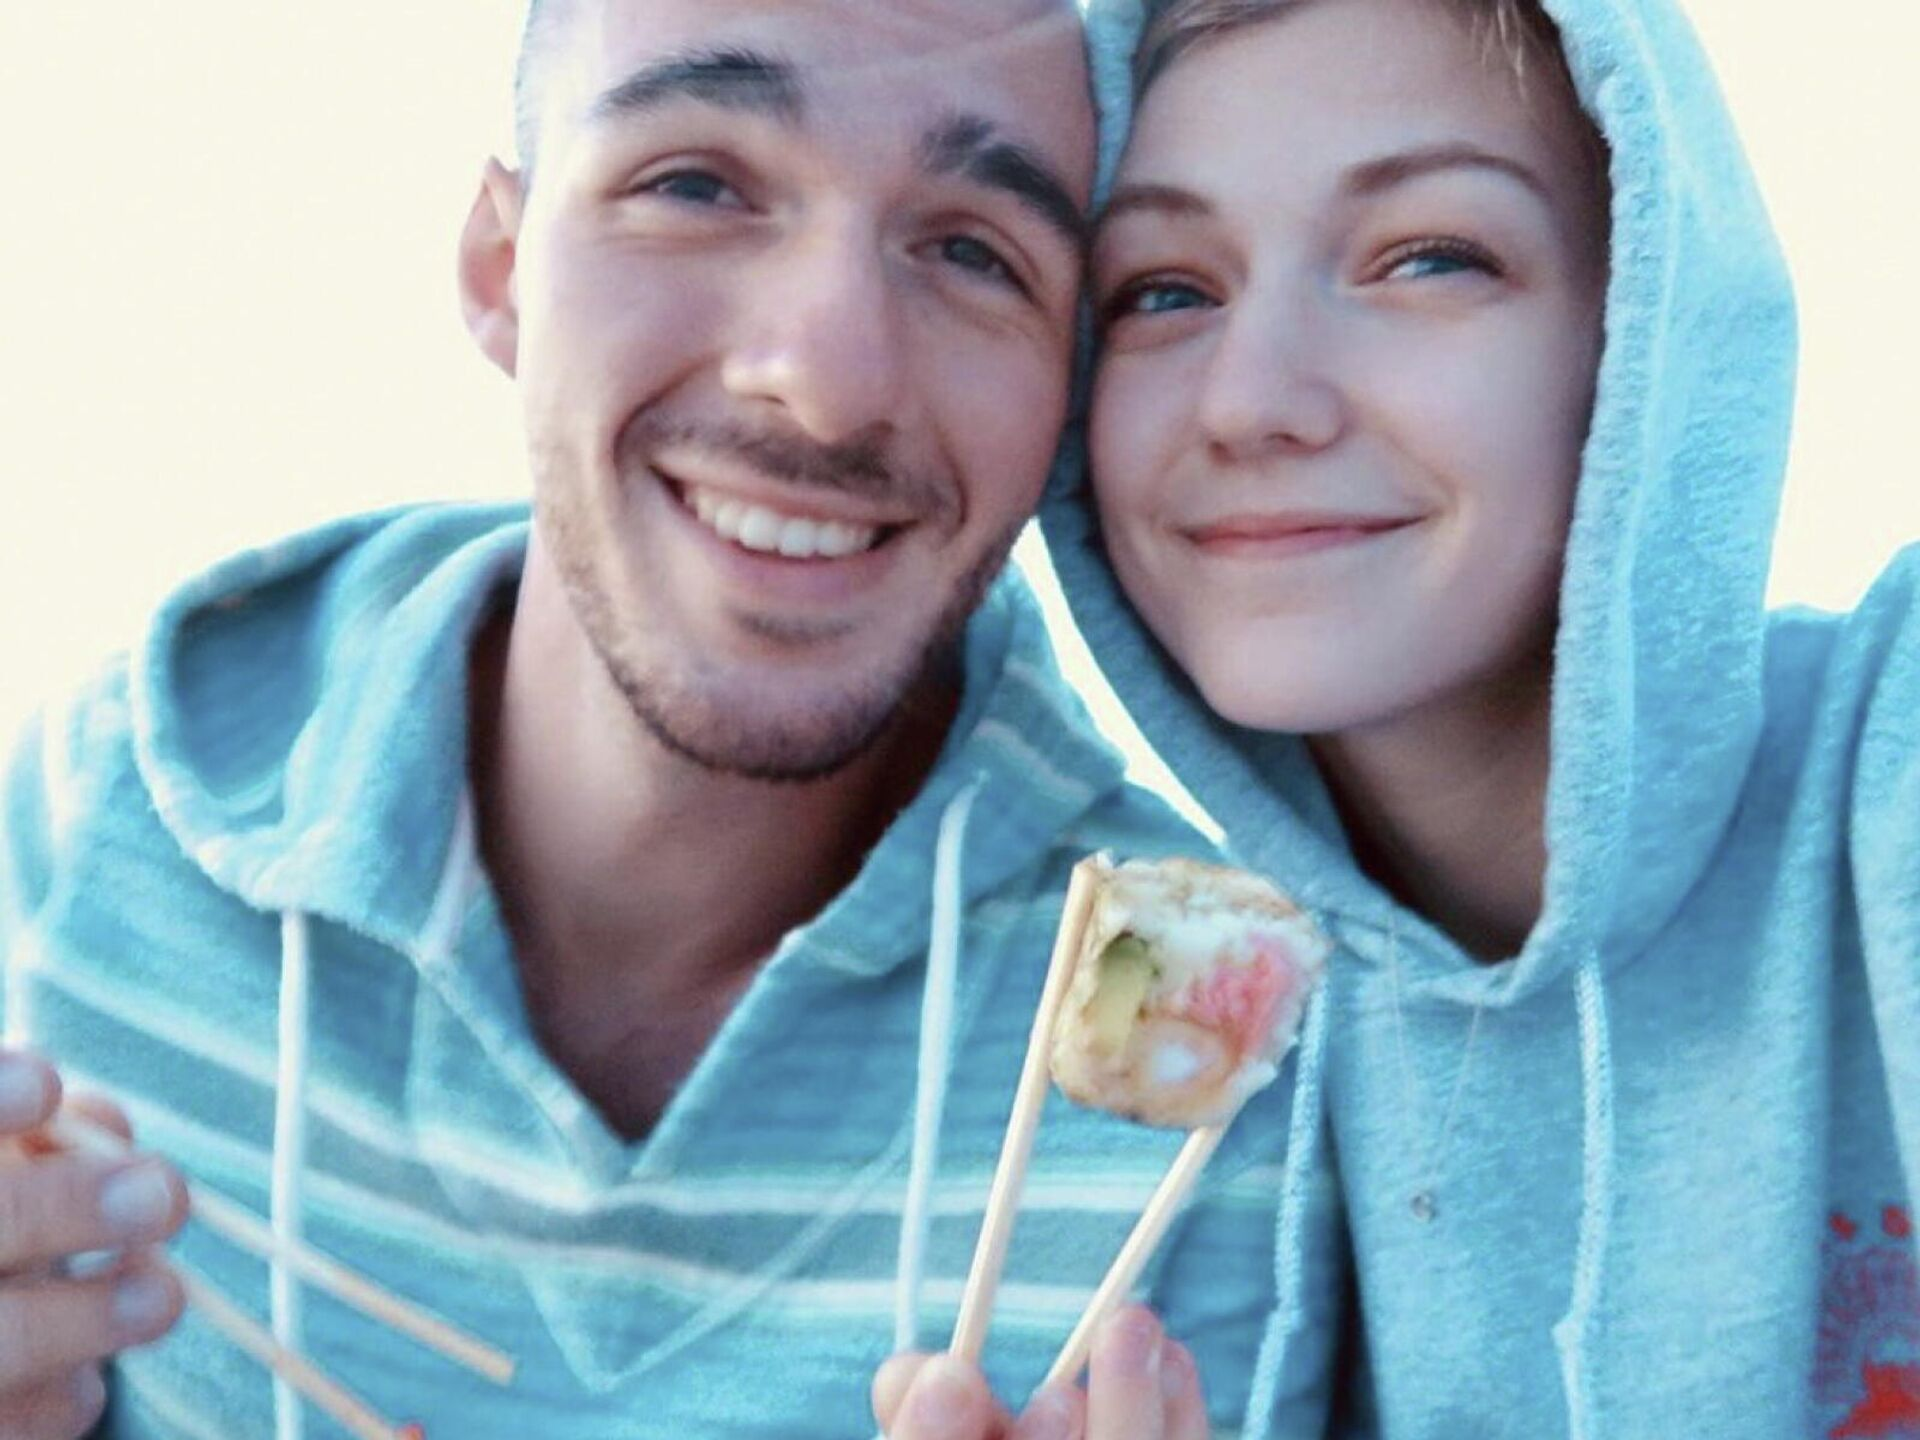 Gabrielle Petito, 22, who was reported missing on September 11, 2021 after traveling with her boyfriend around the country in a van and never returned home, poses for a photo with Brian Laundrie in this undated handout photo.  - Sputnik International, 1920, 26.09.2021